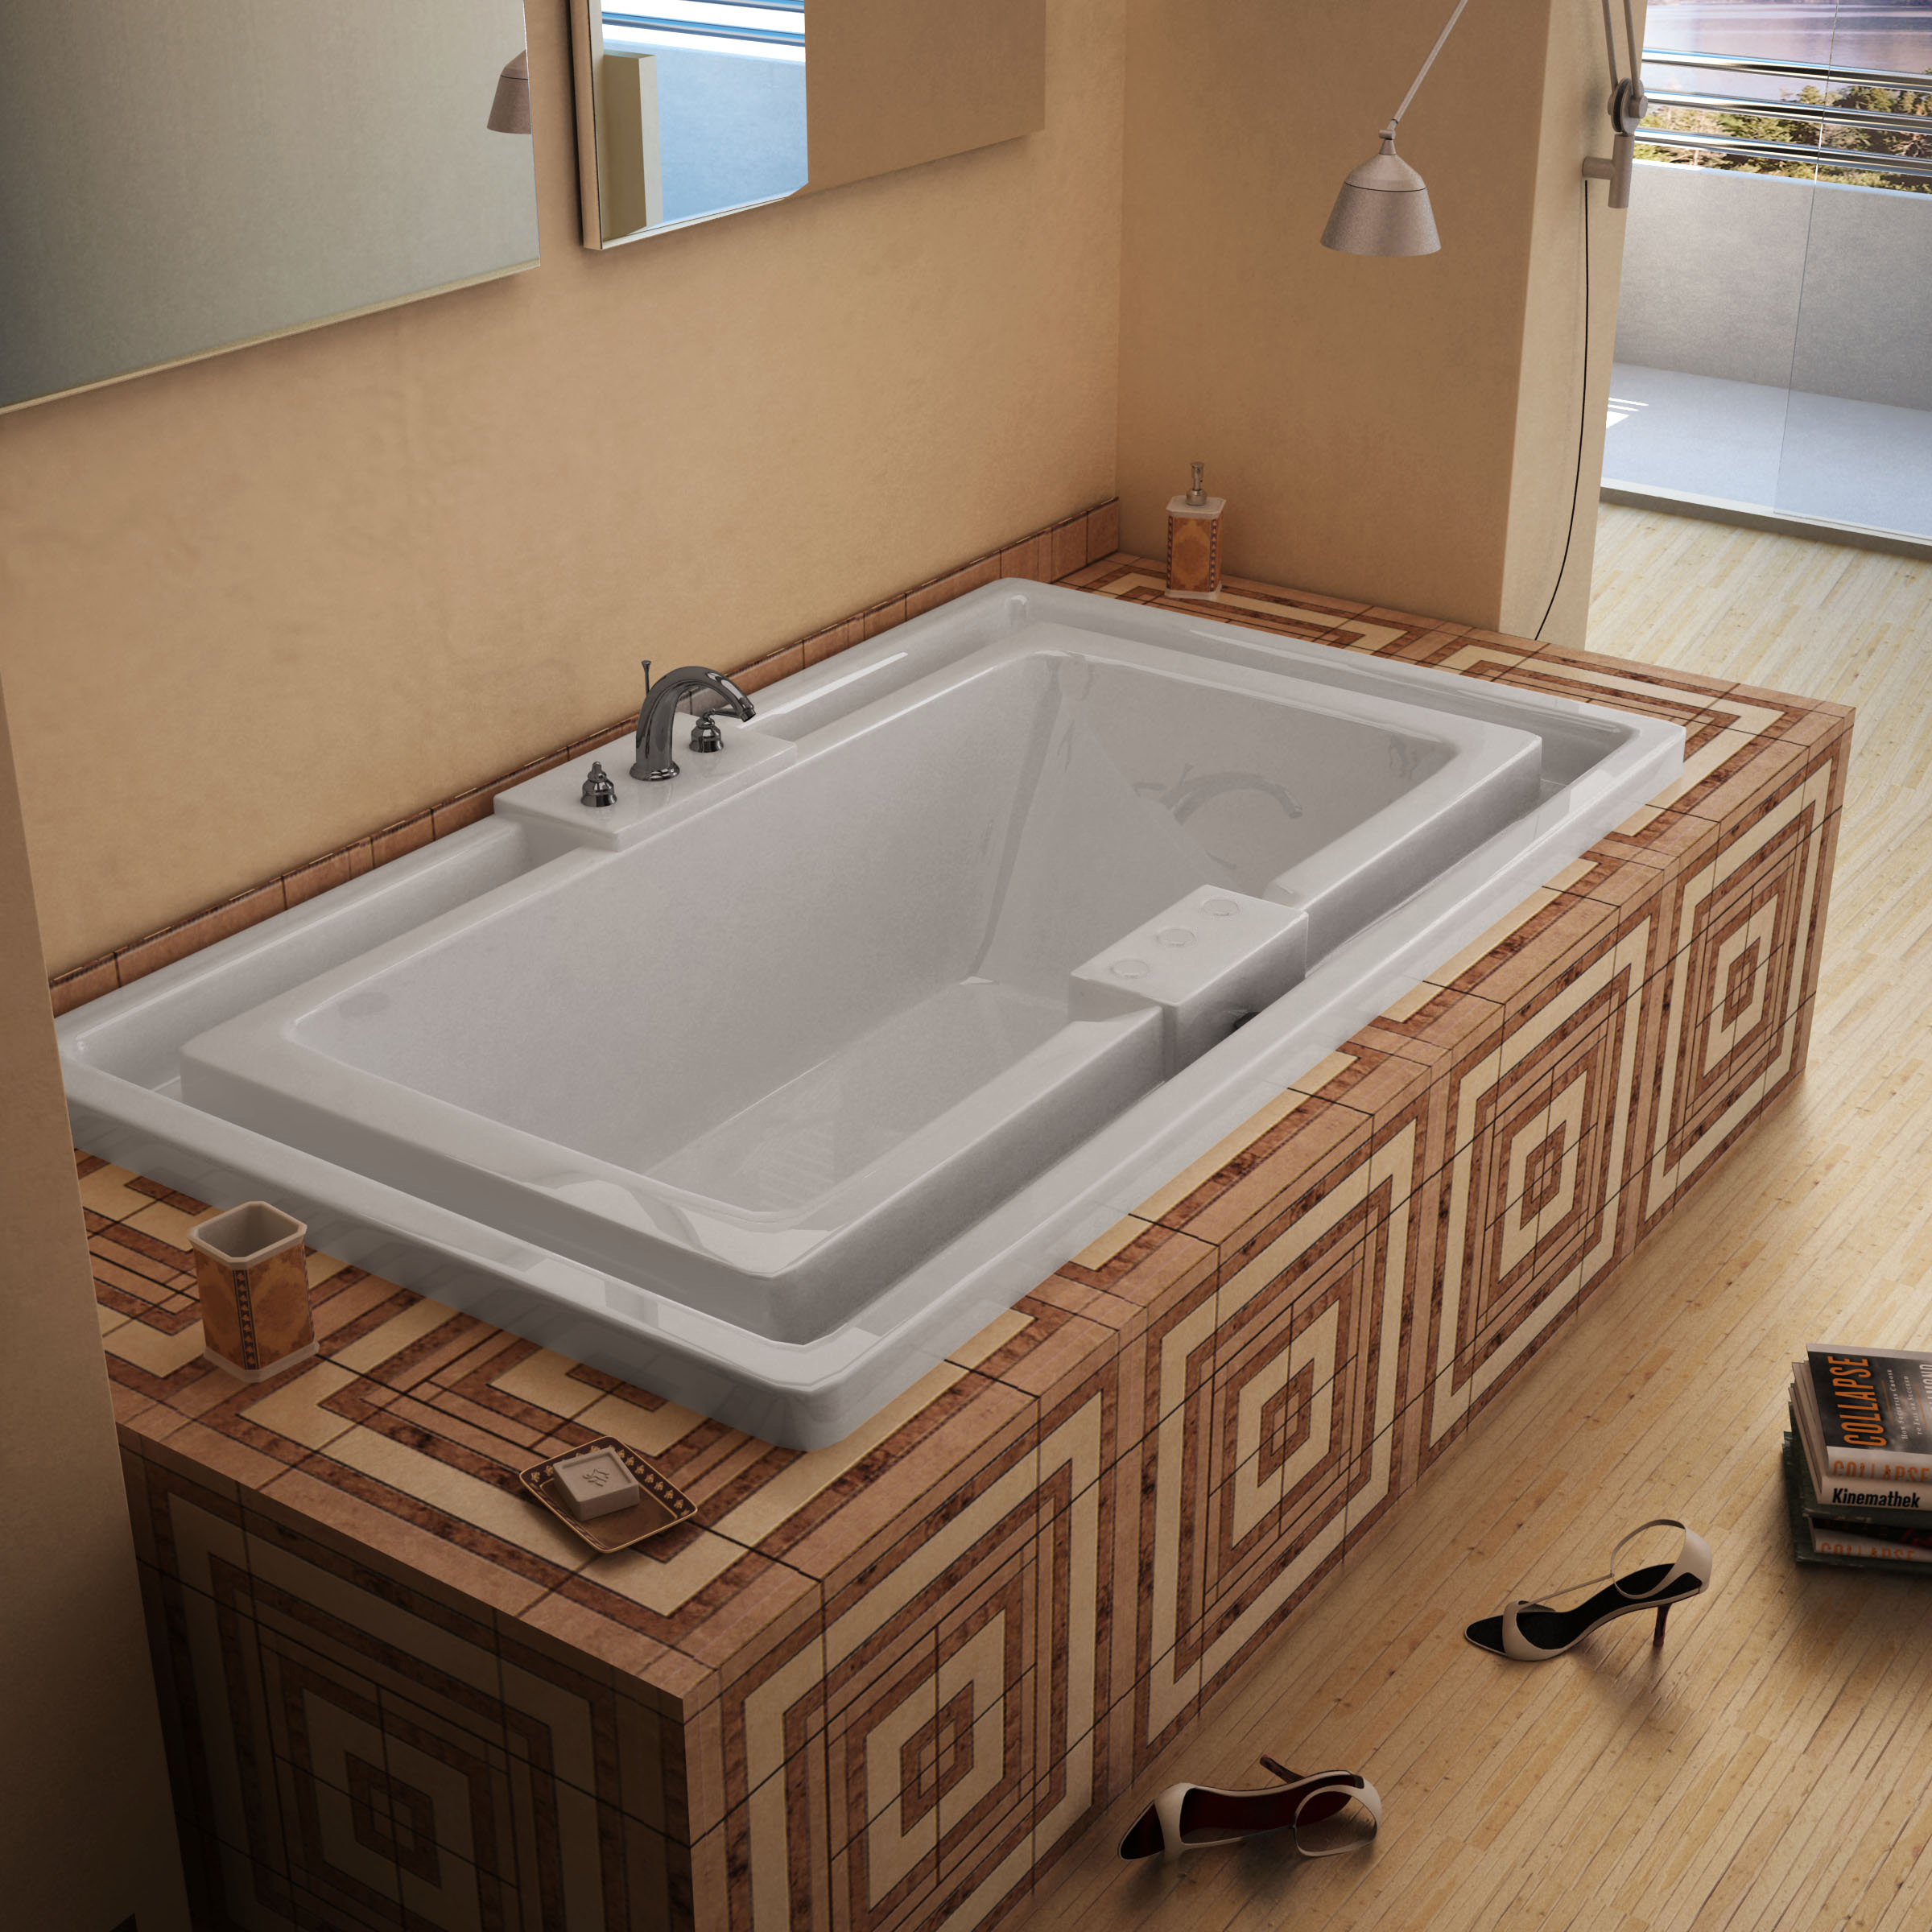 Venzi Celio 78 x 46 Endless Flow Bathtub with Center Drain